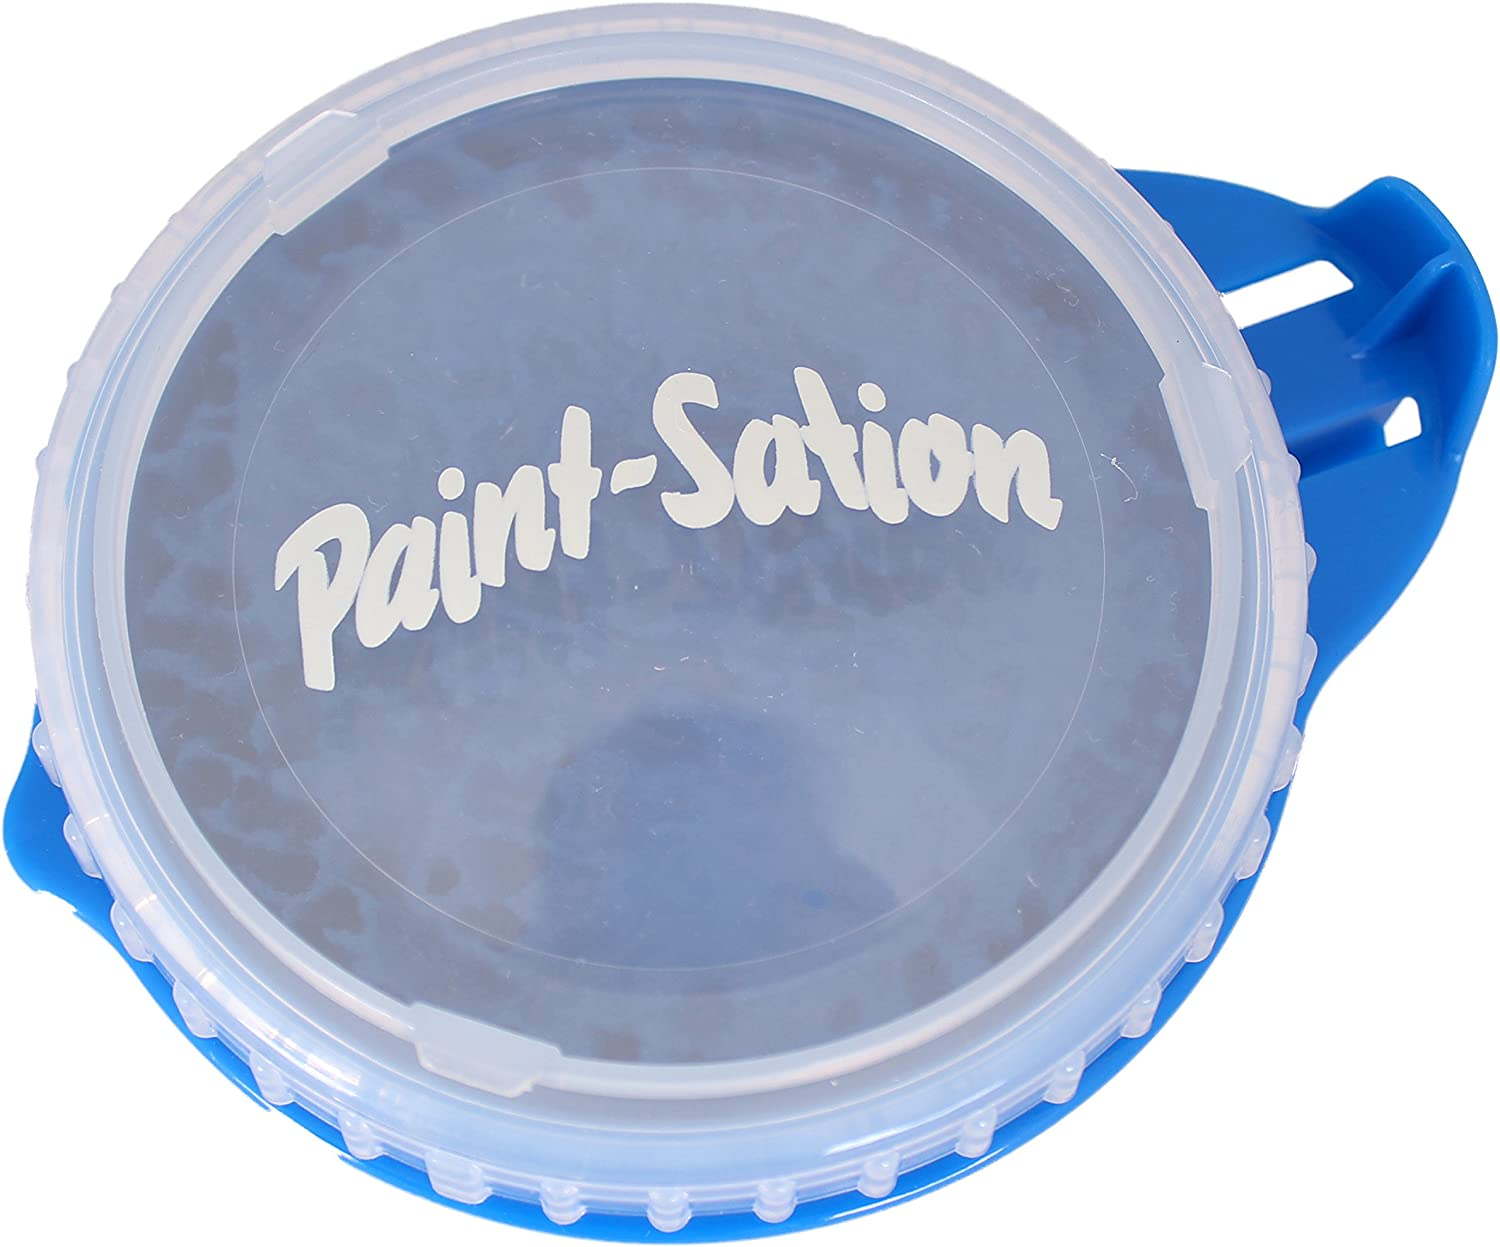 Dispatched From UK Paint-Sation Anti-Gravity Easel